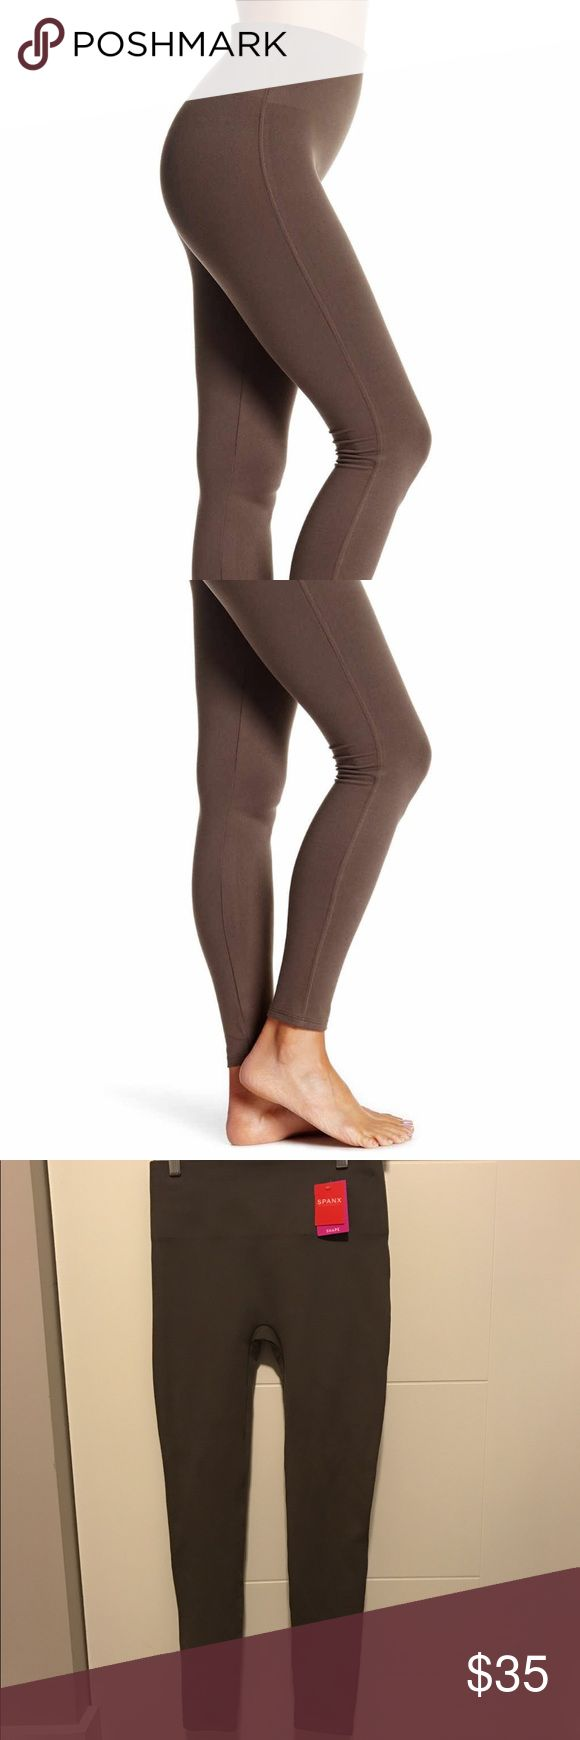 SPANX Essential Legging SPANX Essential Legging. Size is Medium. Color called Sienna which is very neutral brownish green color. These are very concealing and give you a great shape. SPANX Pants Leggings